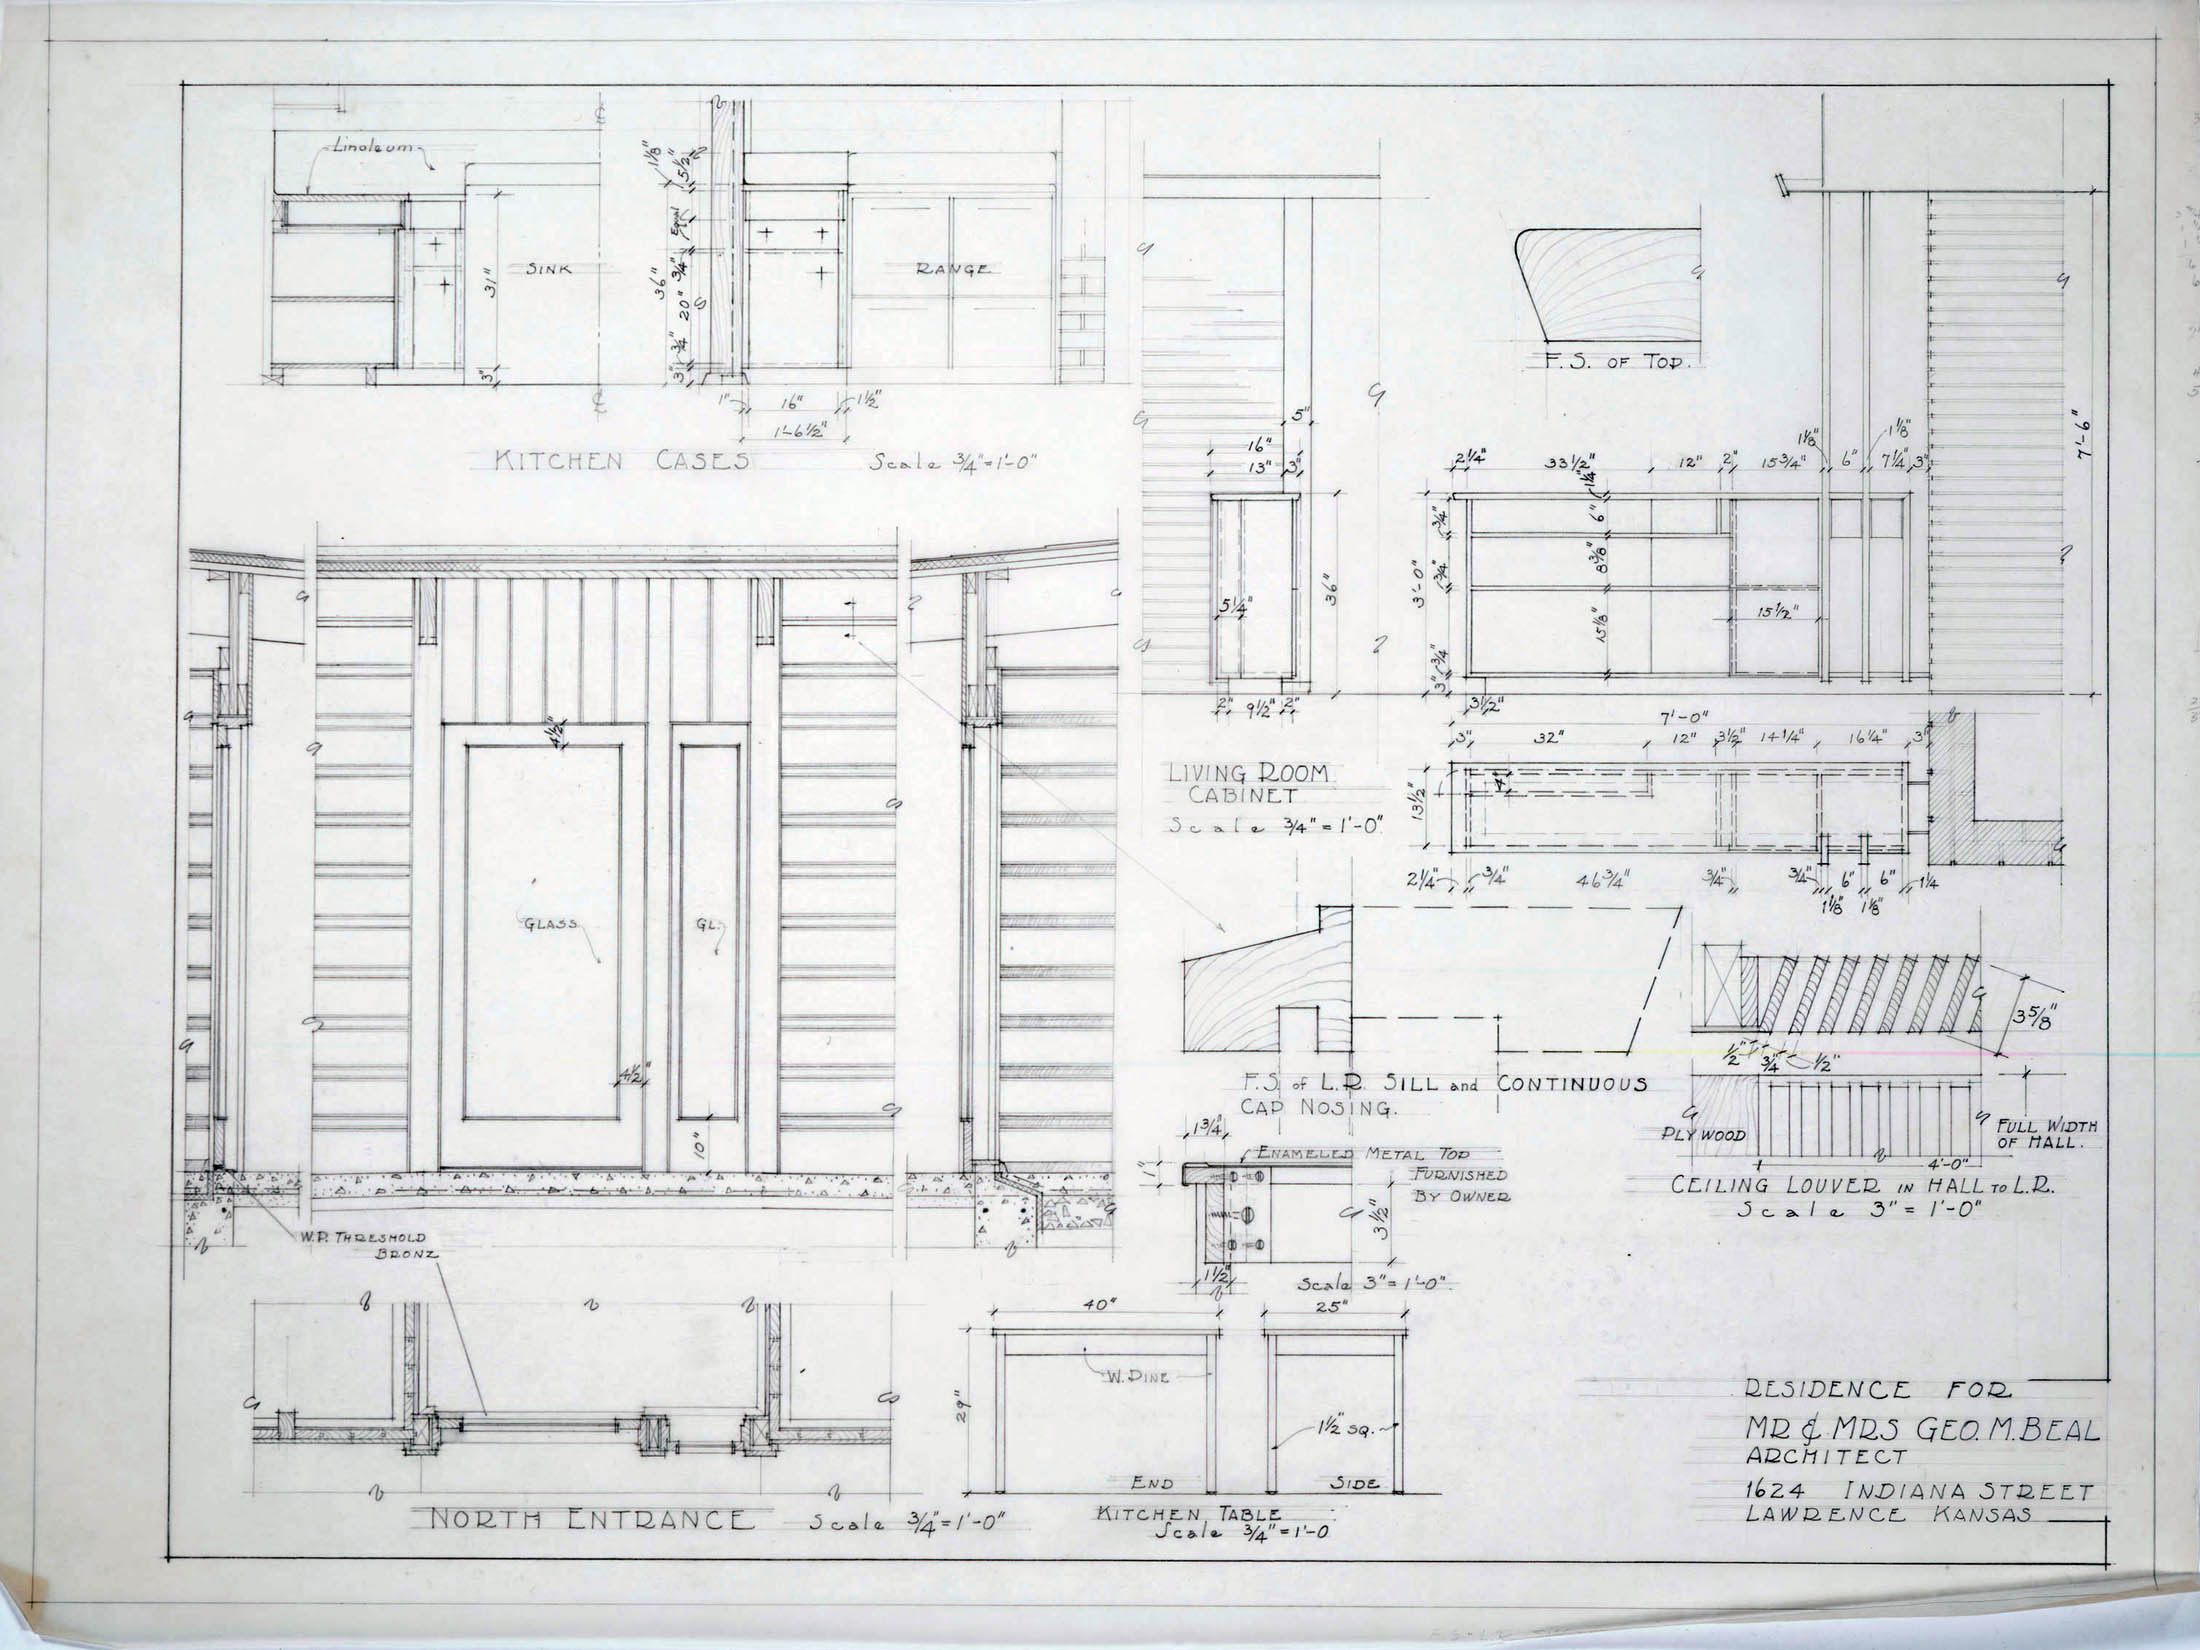 Kitchen Cabinet Construction Drawings : Architectural drawings click images to expand « lawrence